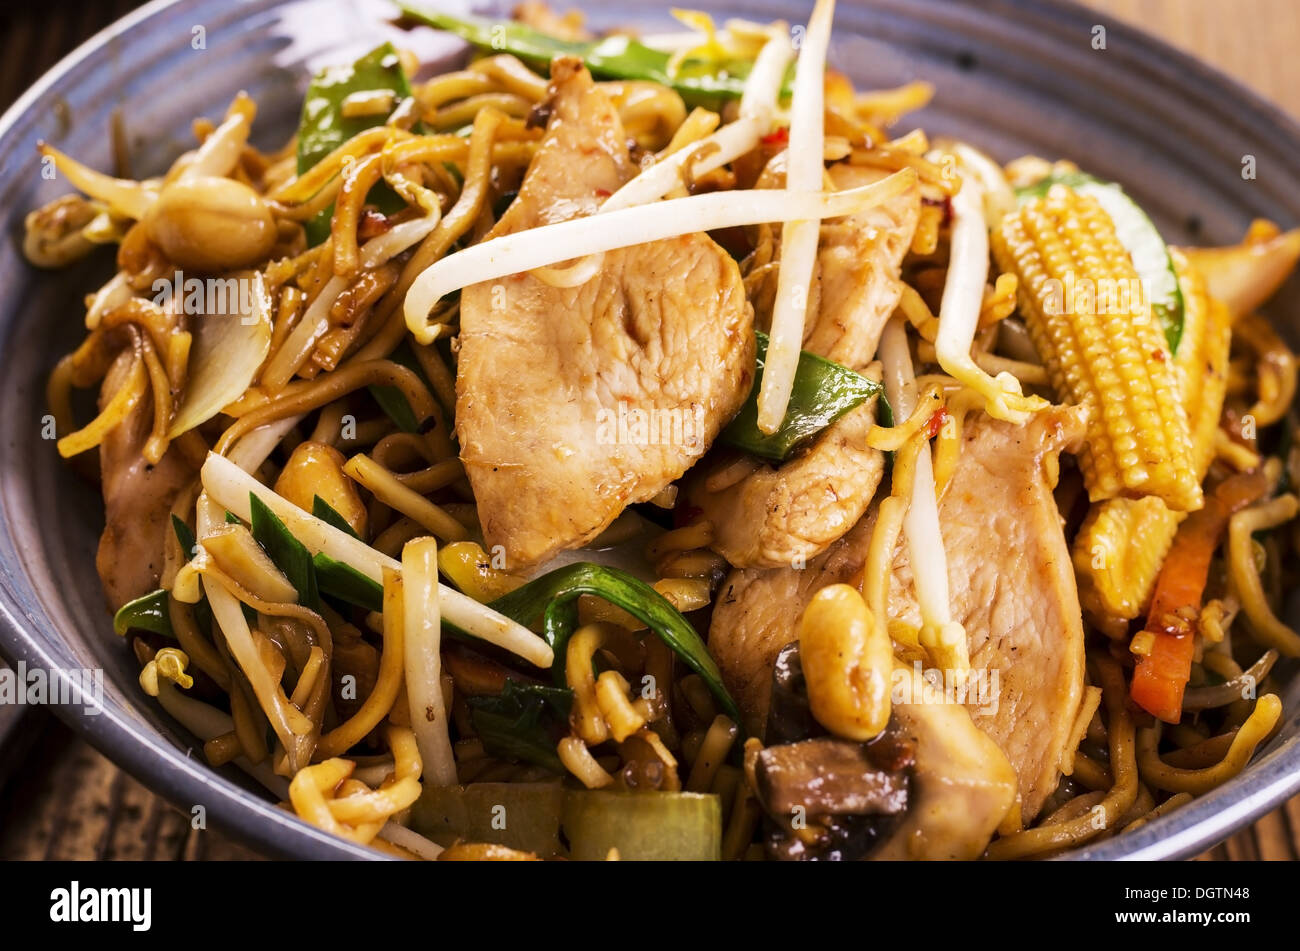 stir fried noodles with chicken Stock Photo